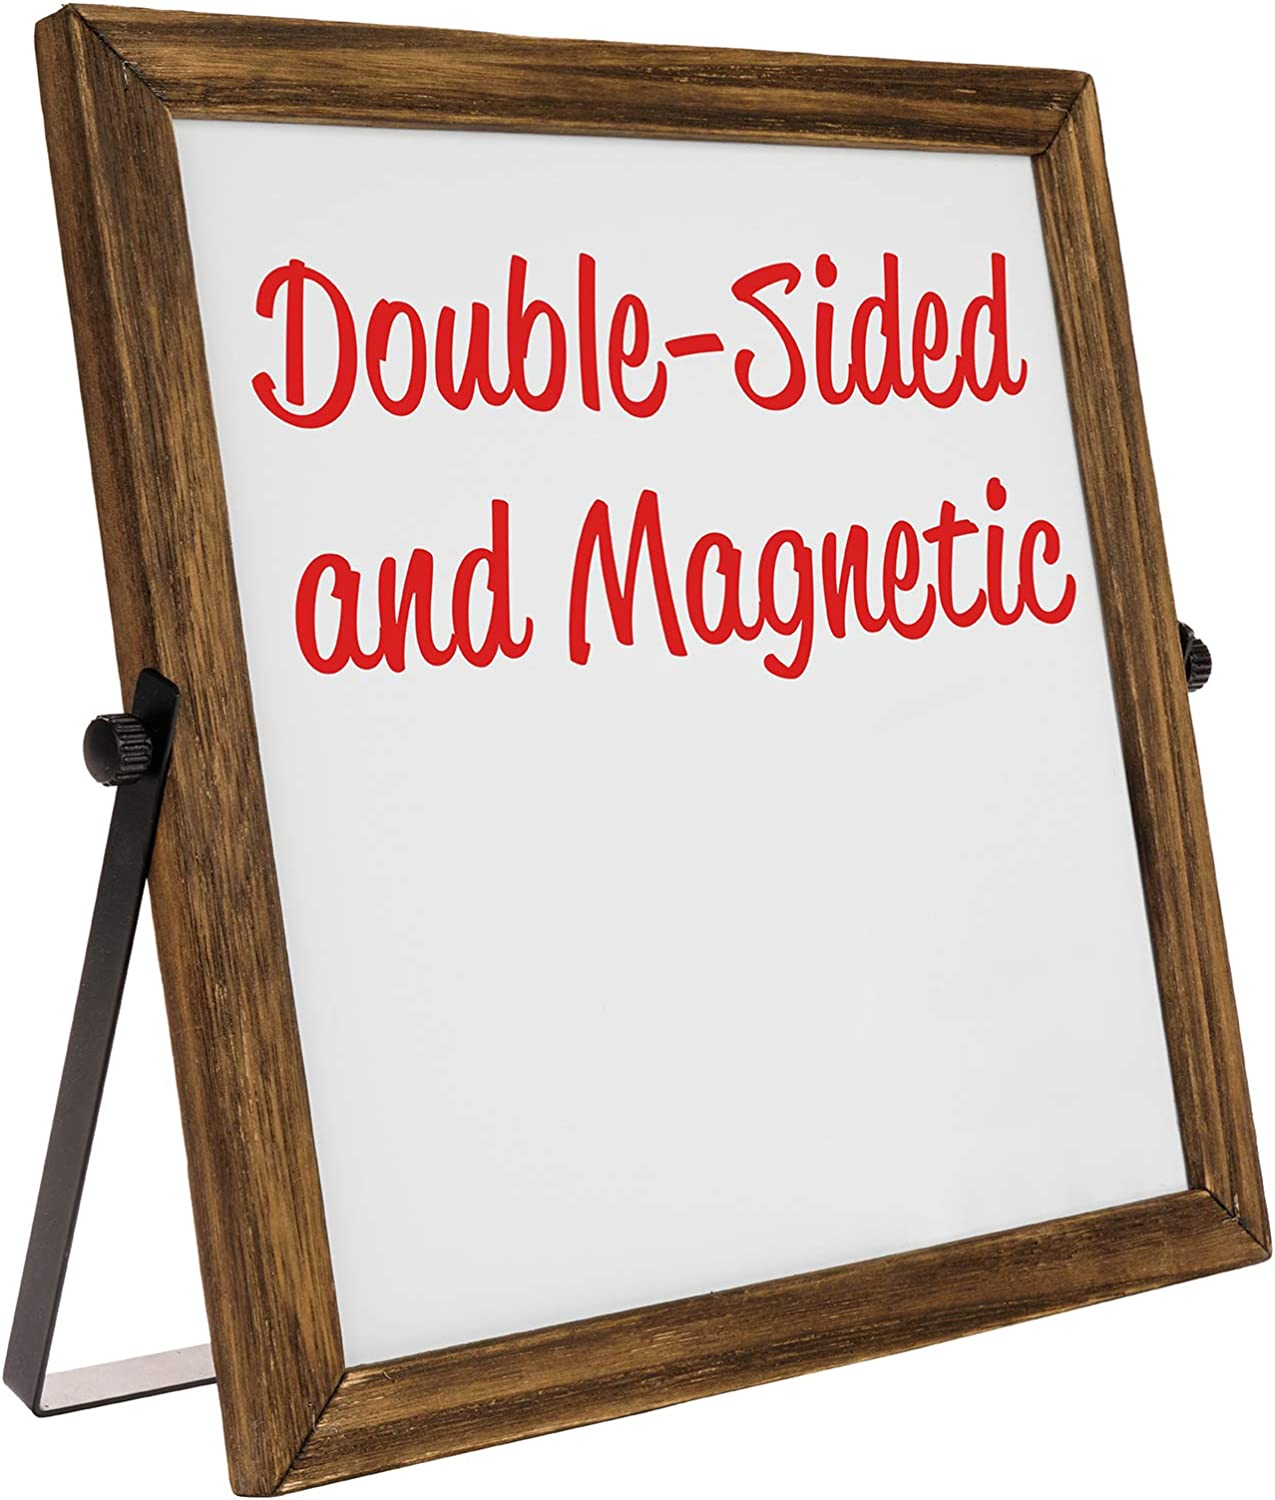 "Rustic Double Sided 11"" x 11"" Whiteboard: Reversible, Double Sided, Dry Erase, Magnetic, Small, Portable, Table Top Easel Board with Stand and Wooden Frame"